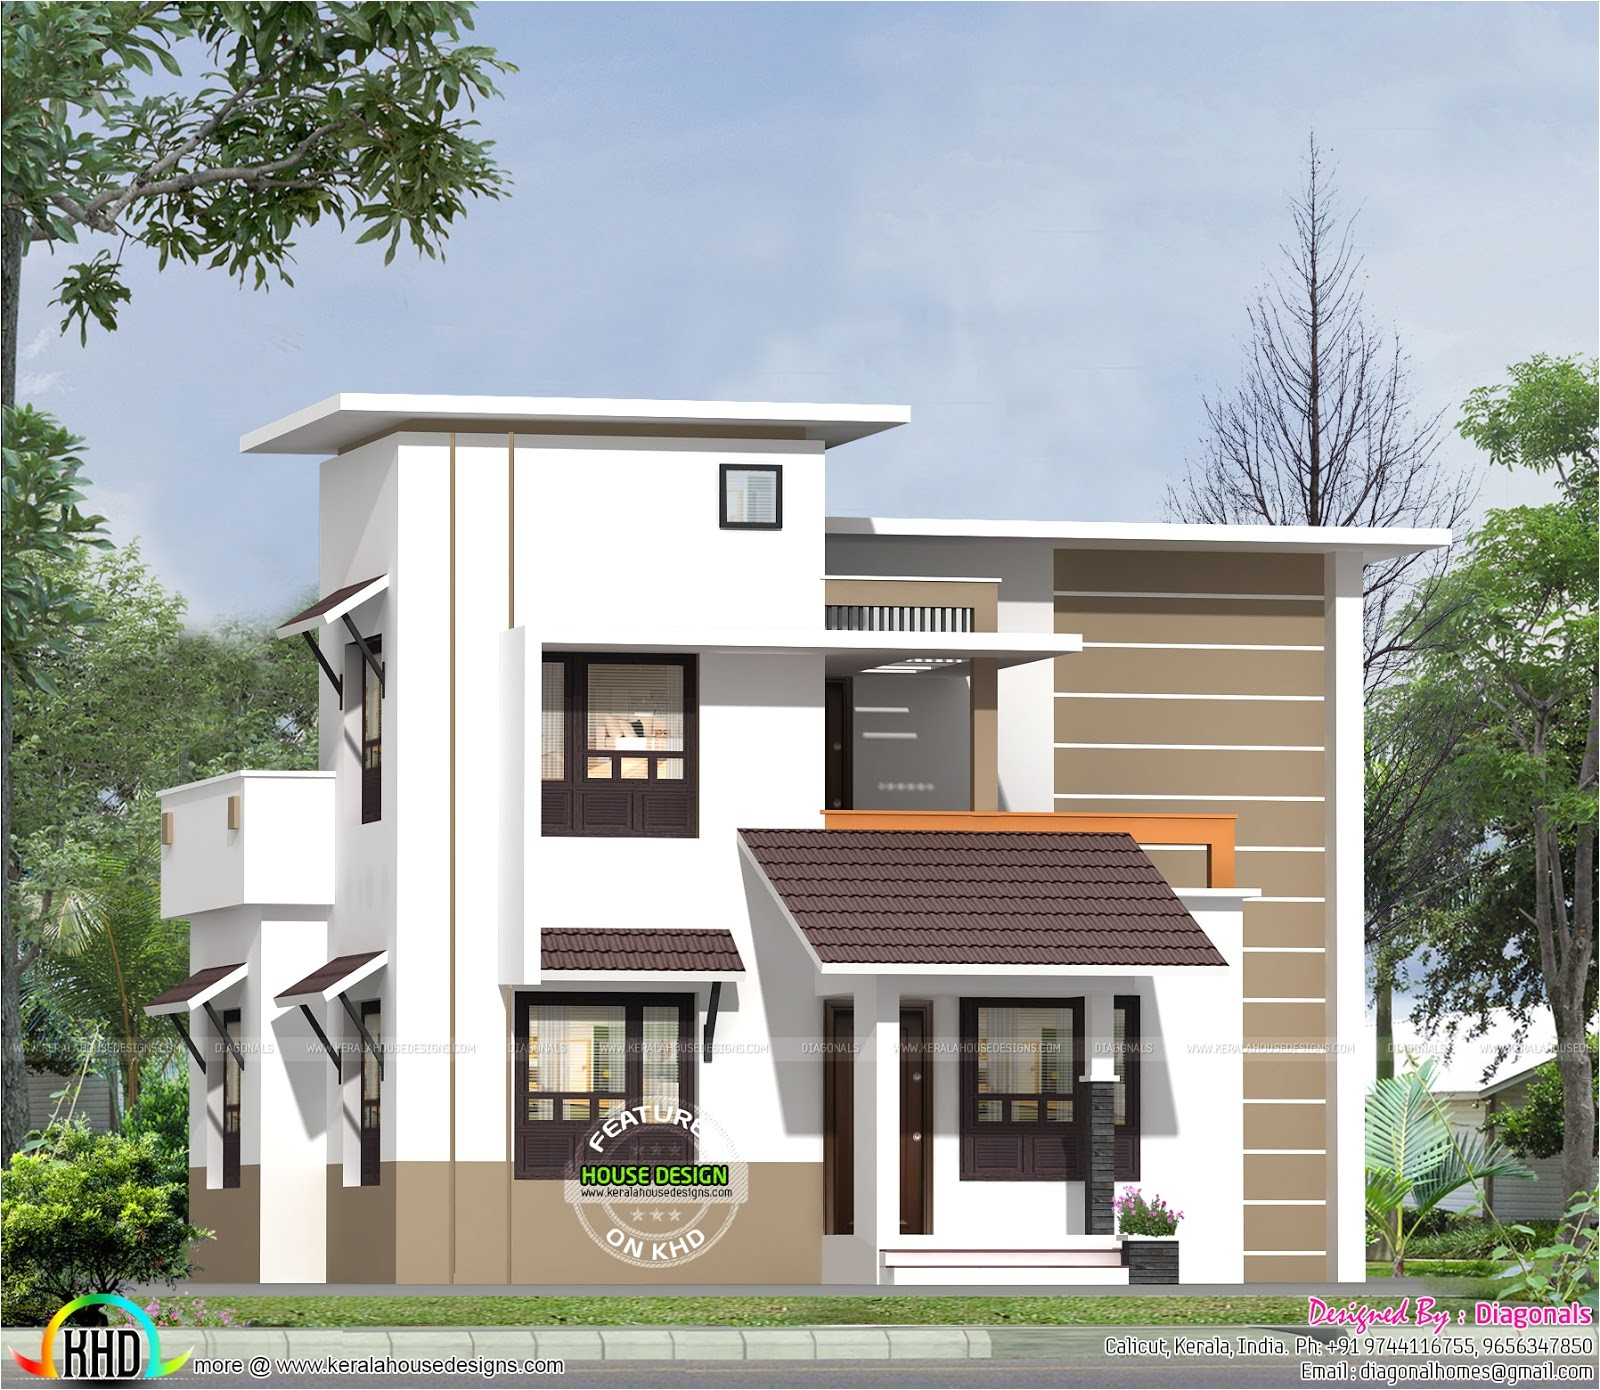 affordable low cost home